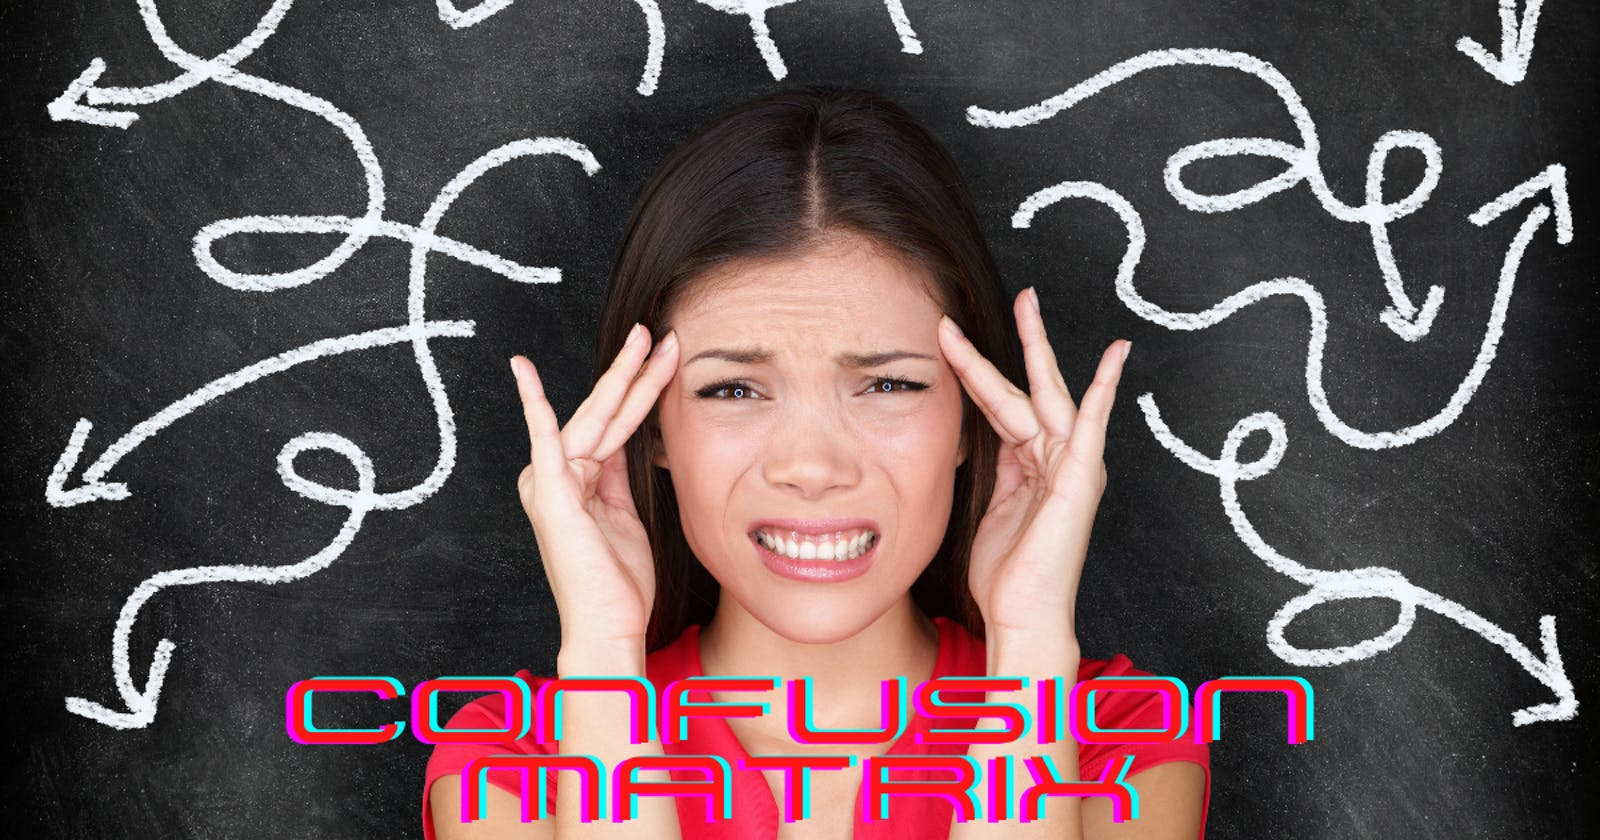 Is Confusion Matrix really Confusing?